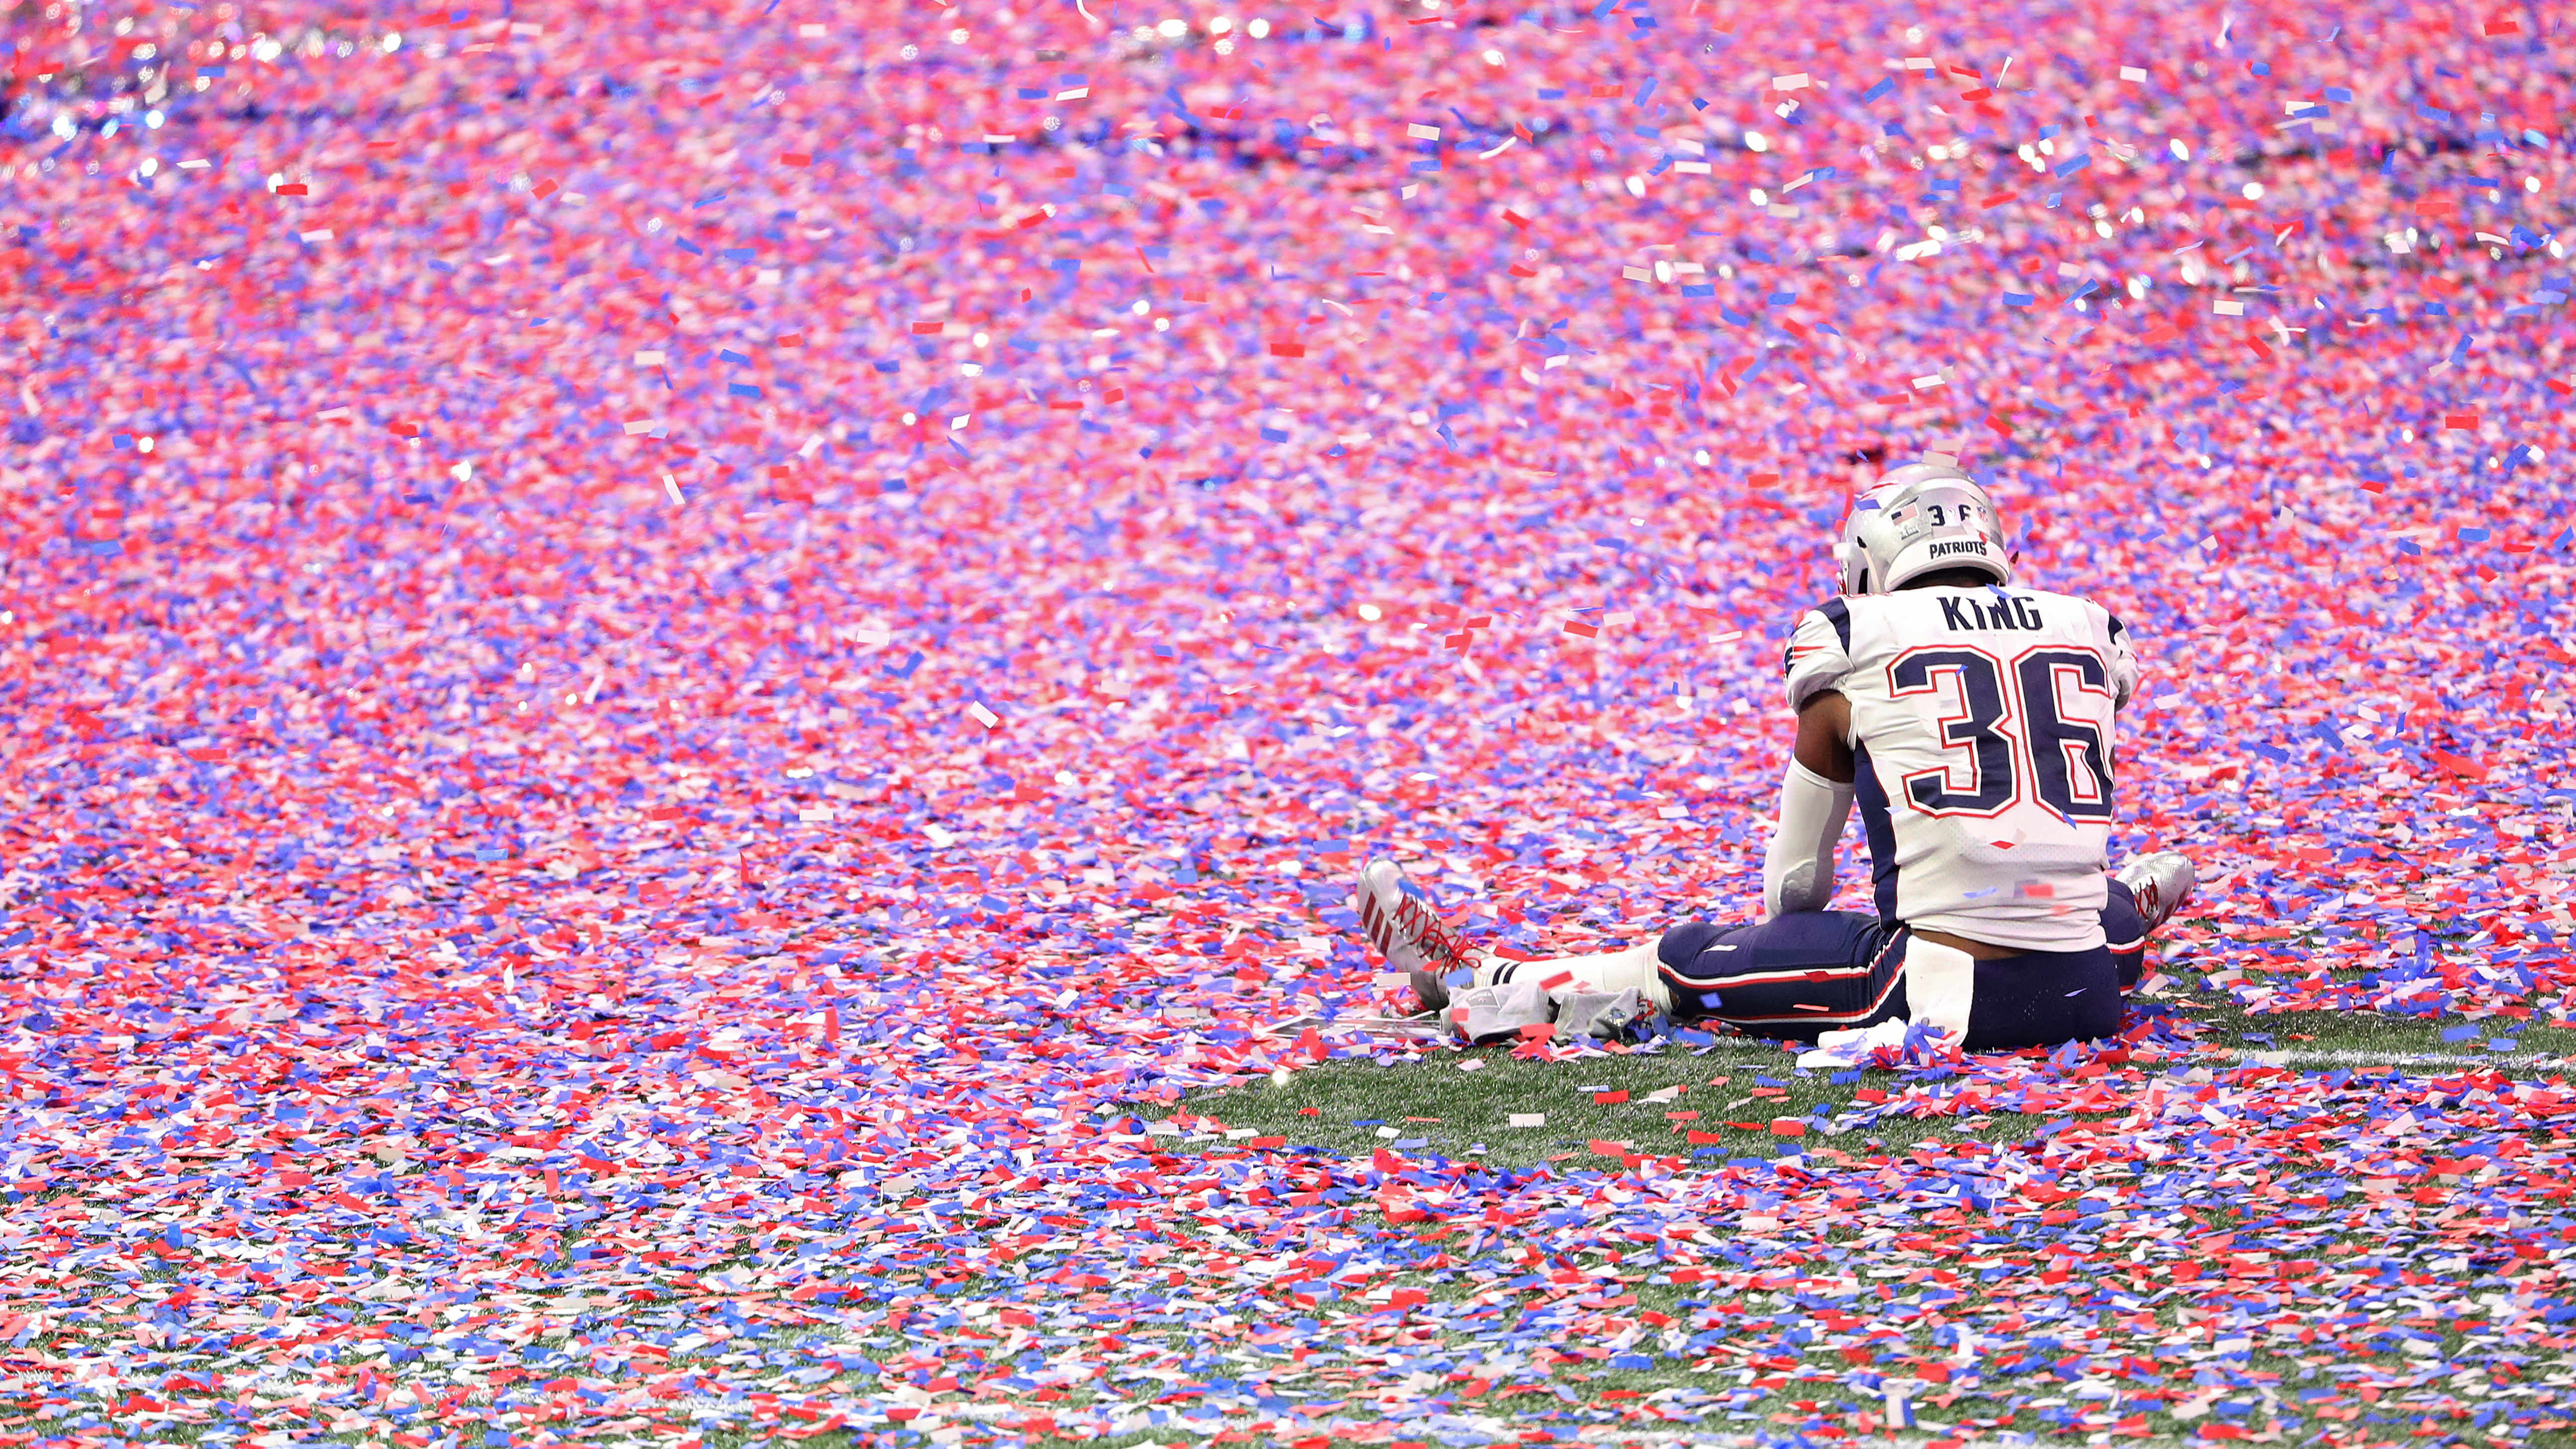 ATLANTA, GEORGIA - FEBRUARY 03: Brandon King #36 of the New England Patriots celebrates after defeating the Los Angeles Ram in Super Bowl LIII at Mercedes-Benz Stadium on February 03, 2019 in Atlanta, Georgia. (Photo by Patrick Smith/Getty Images)